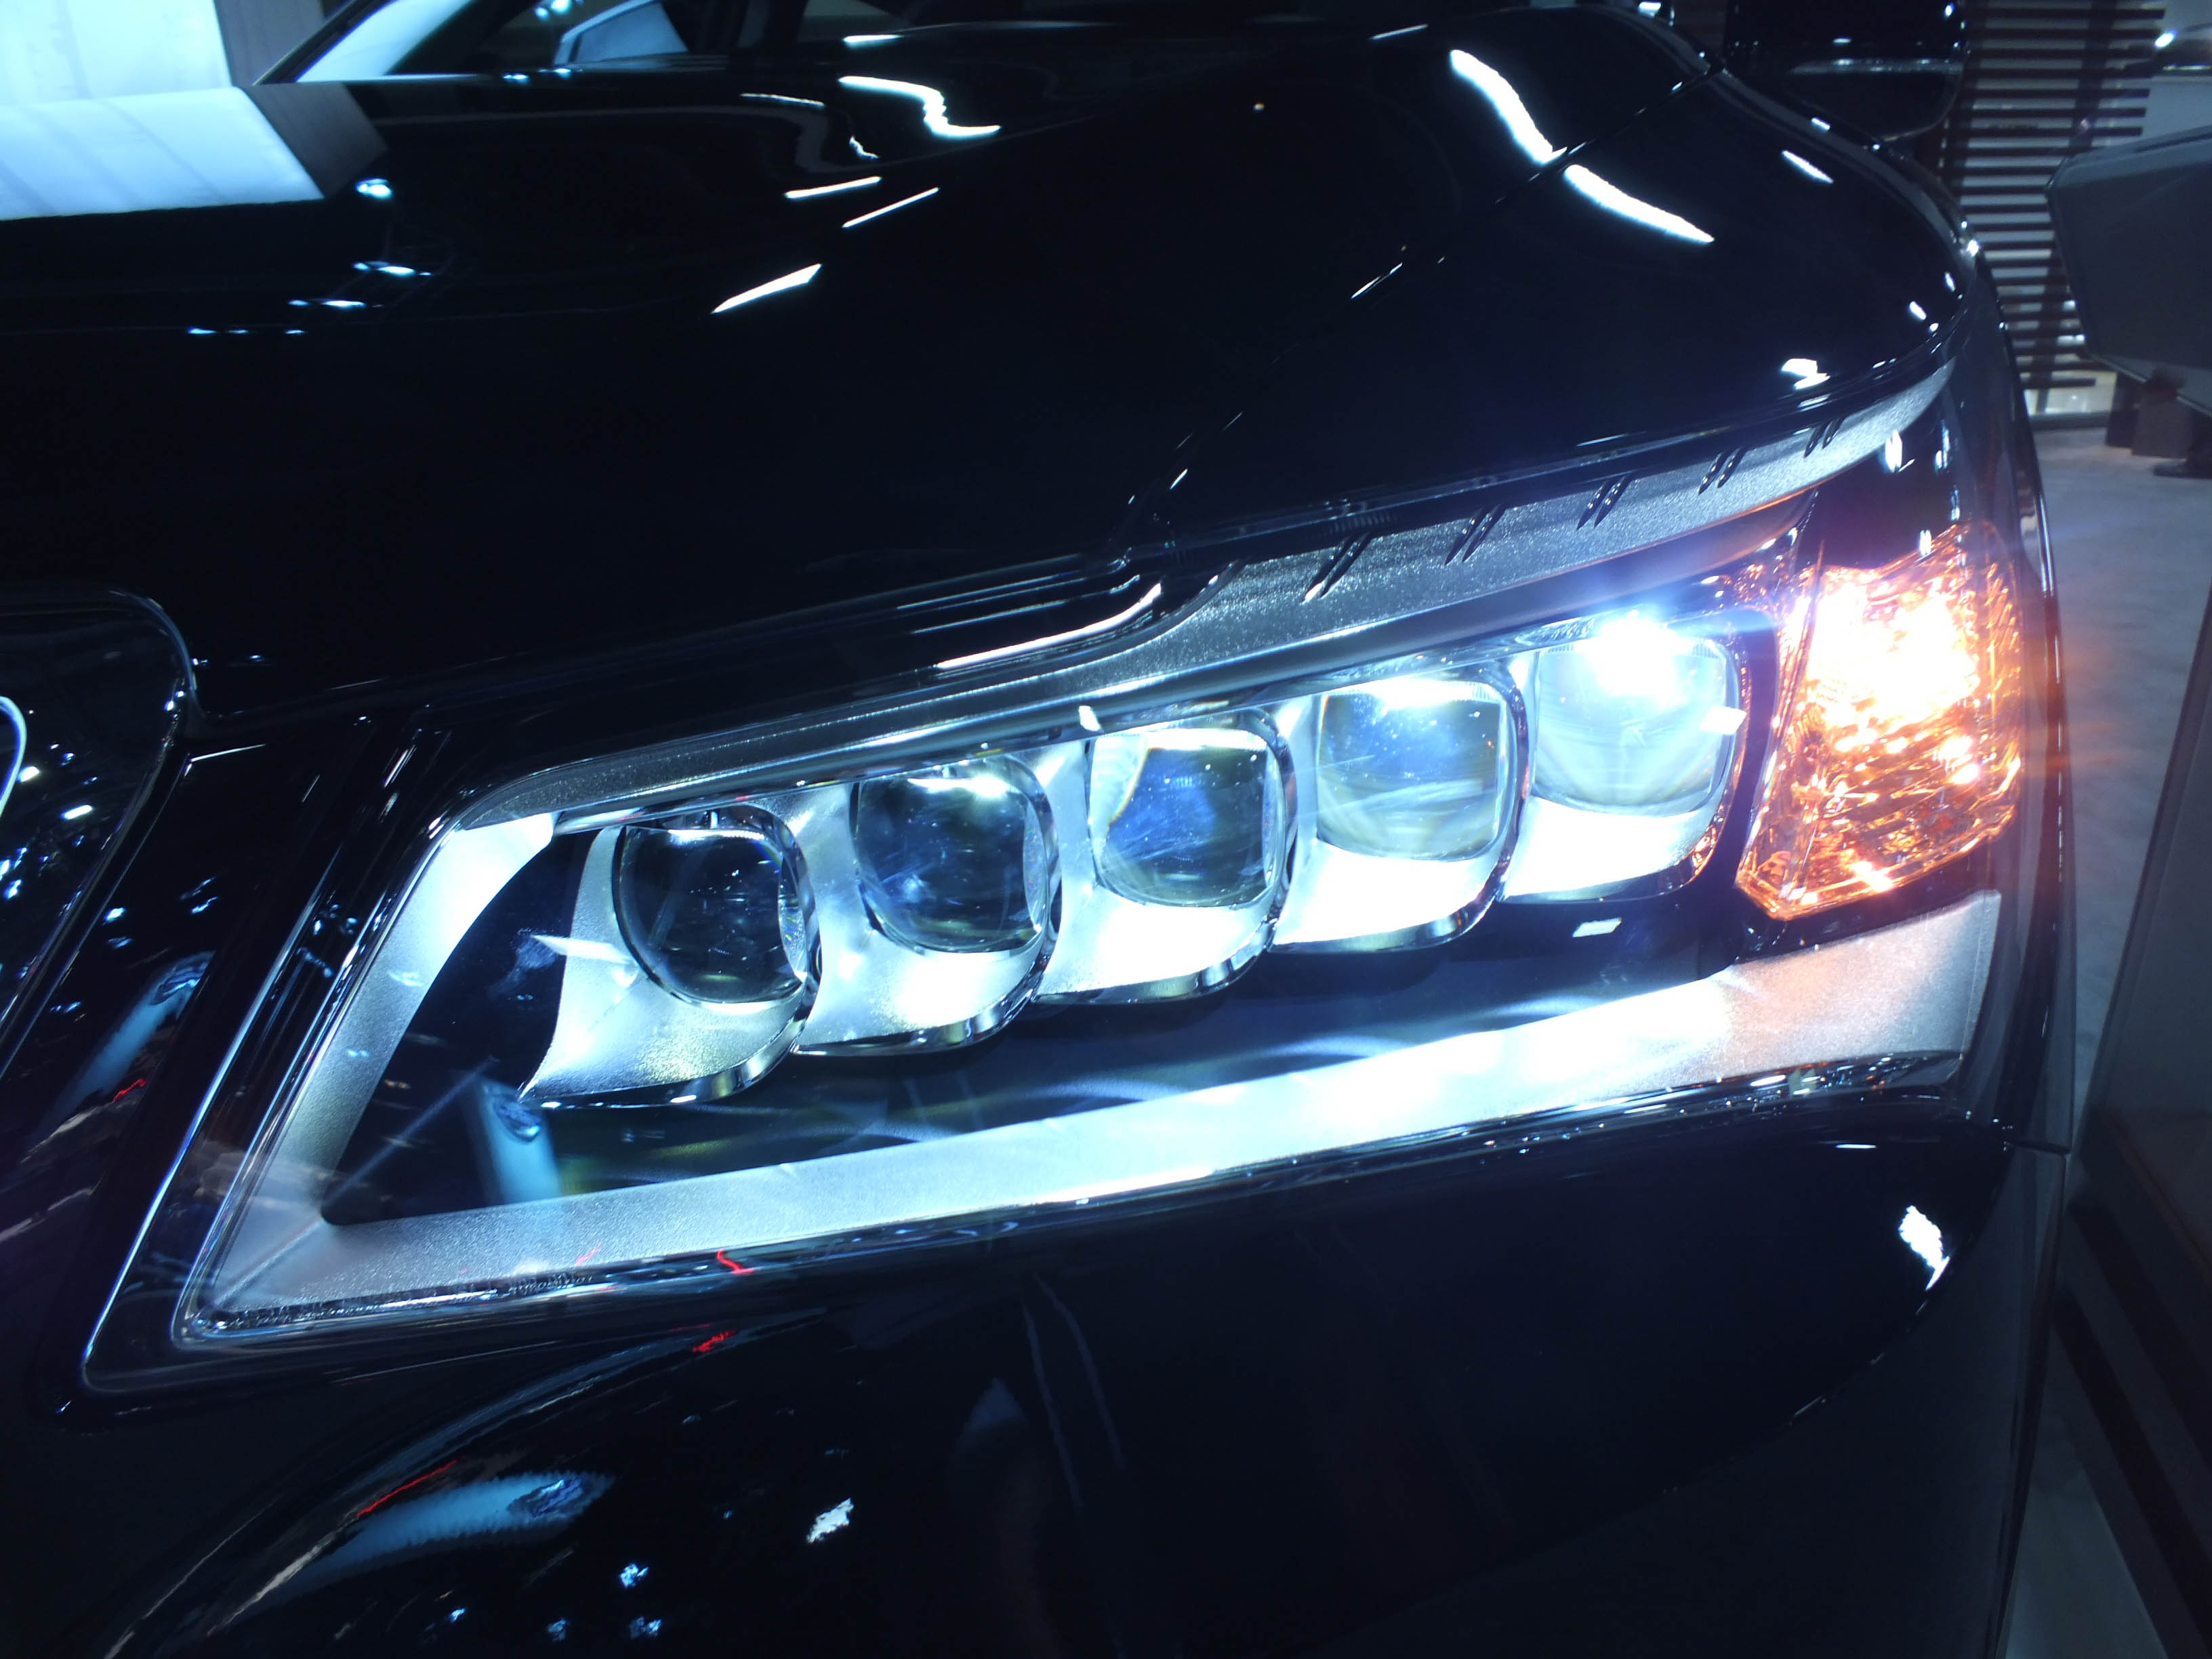 File 2014 Acura Rlx Led Headlight Jpg Wikimedia Commons